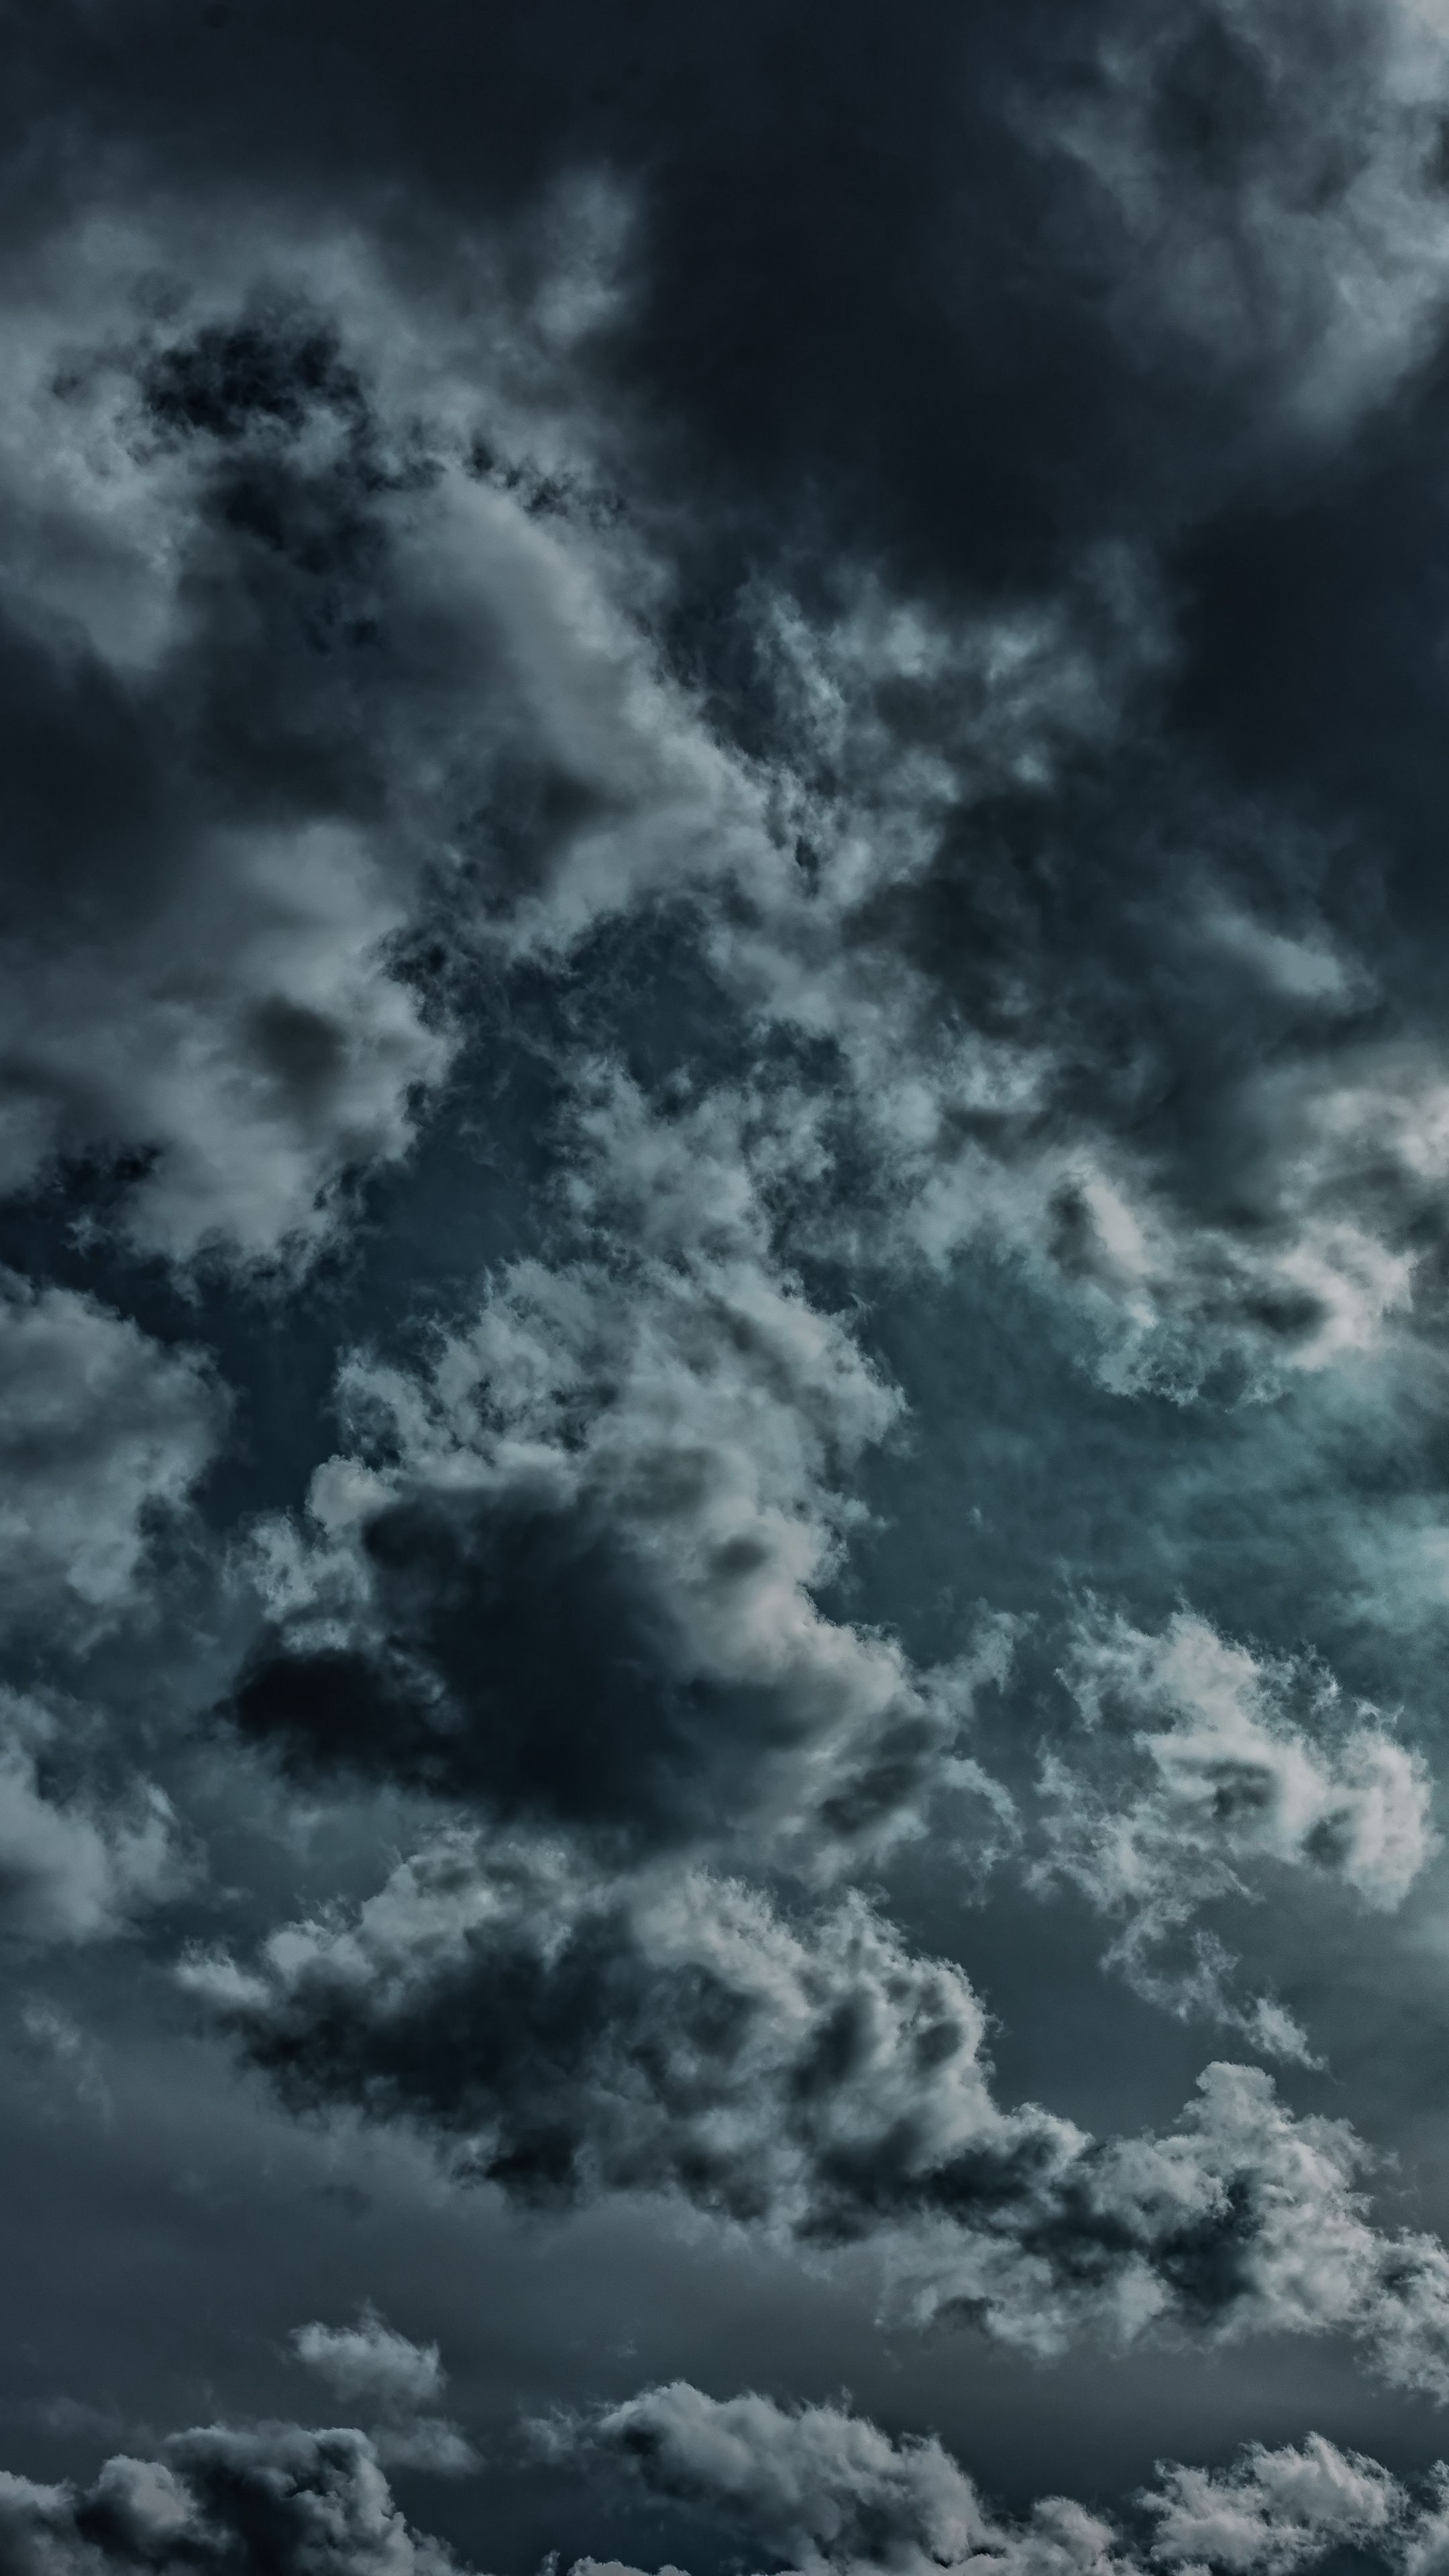 Sky Clouds Sky Cloudy Wallpapers Hd 4k Background For